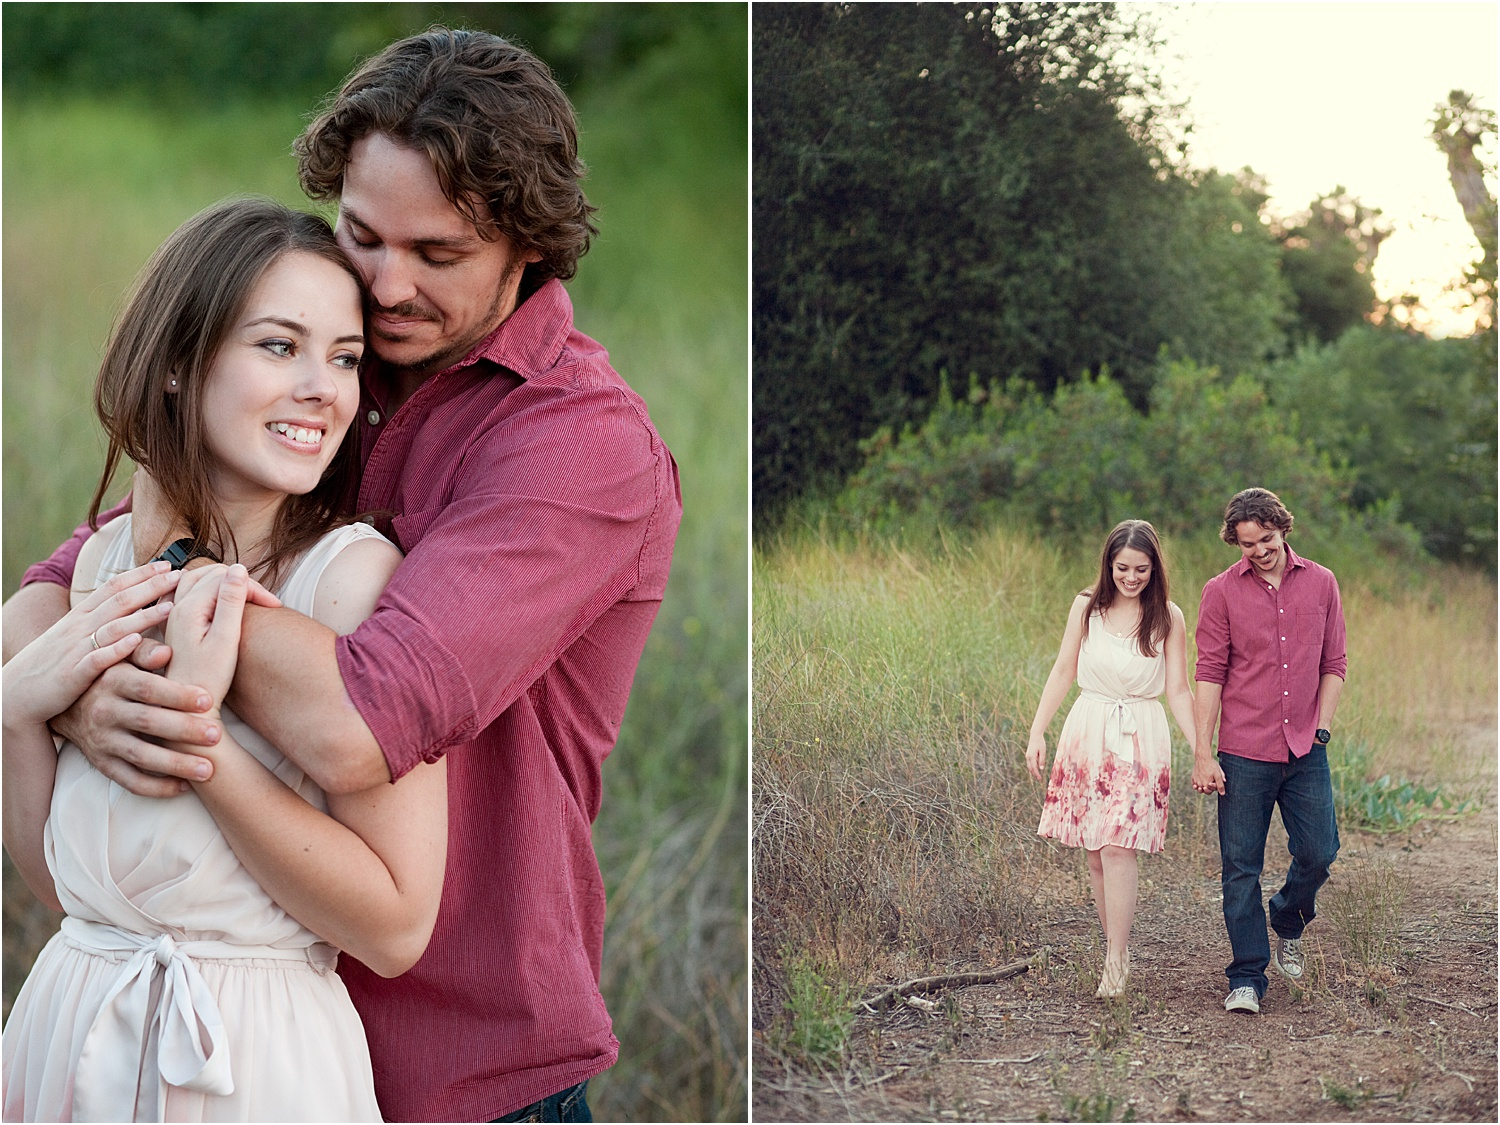 9 - Guide to the Best Poses for Engagement Photos